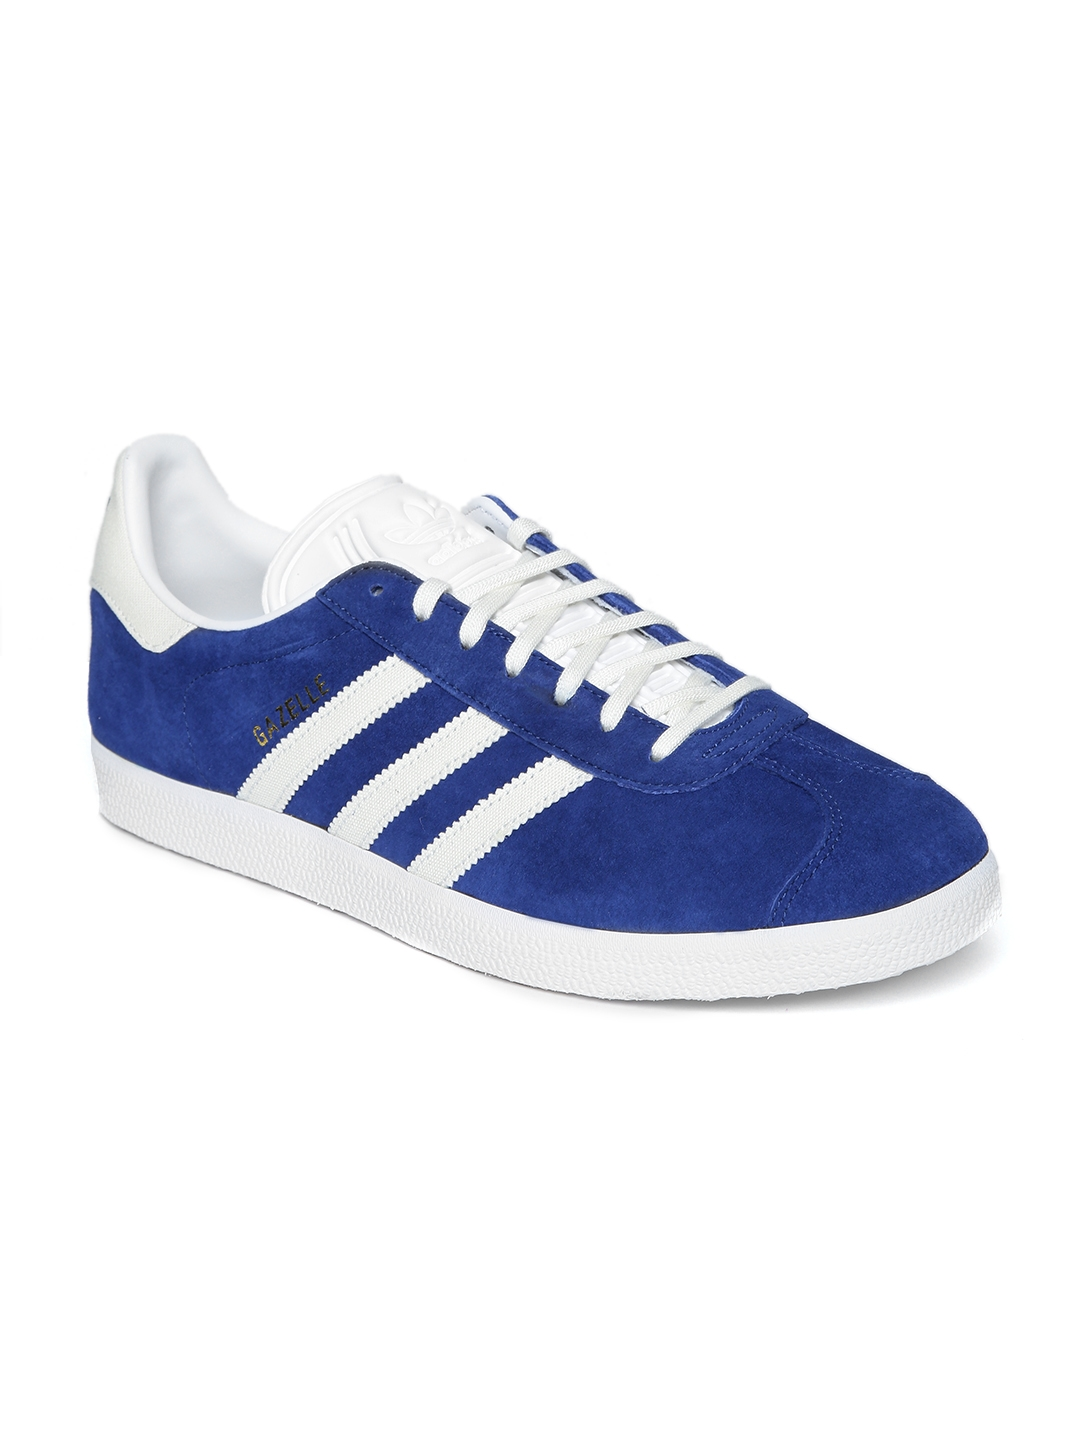 Buy ADIDAS Originals Men Blue   White Gazelle Suede Sneakers ... 3c9627a1e